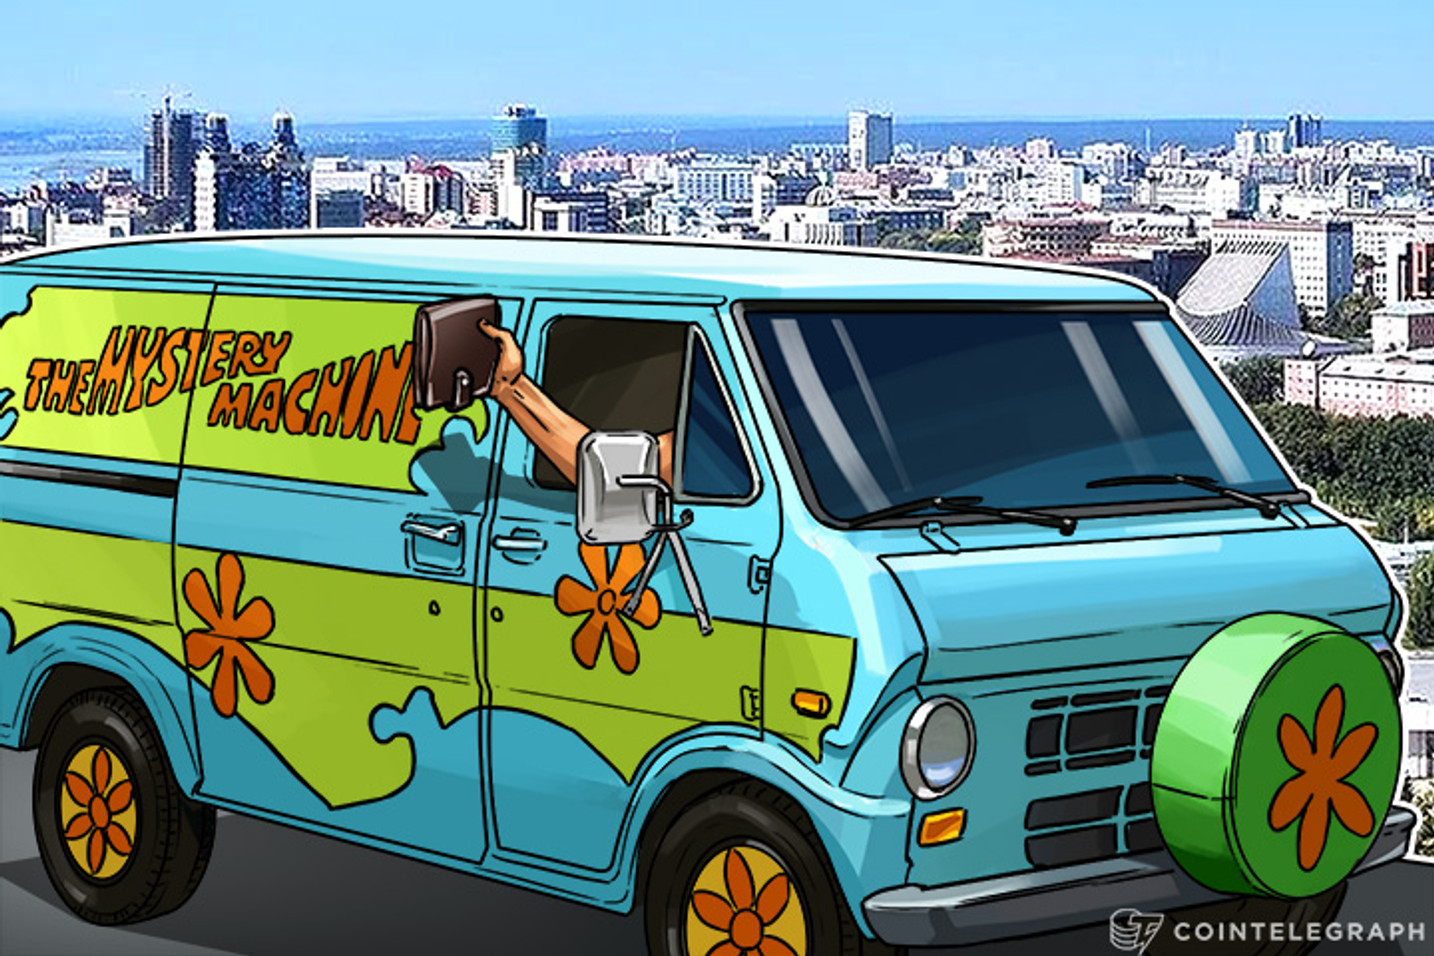 $20 Bln German Energy Company Brings Blockchain to Cars for US Drivers